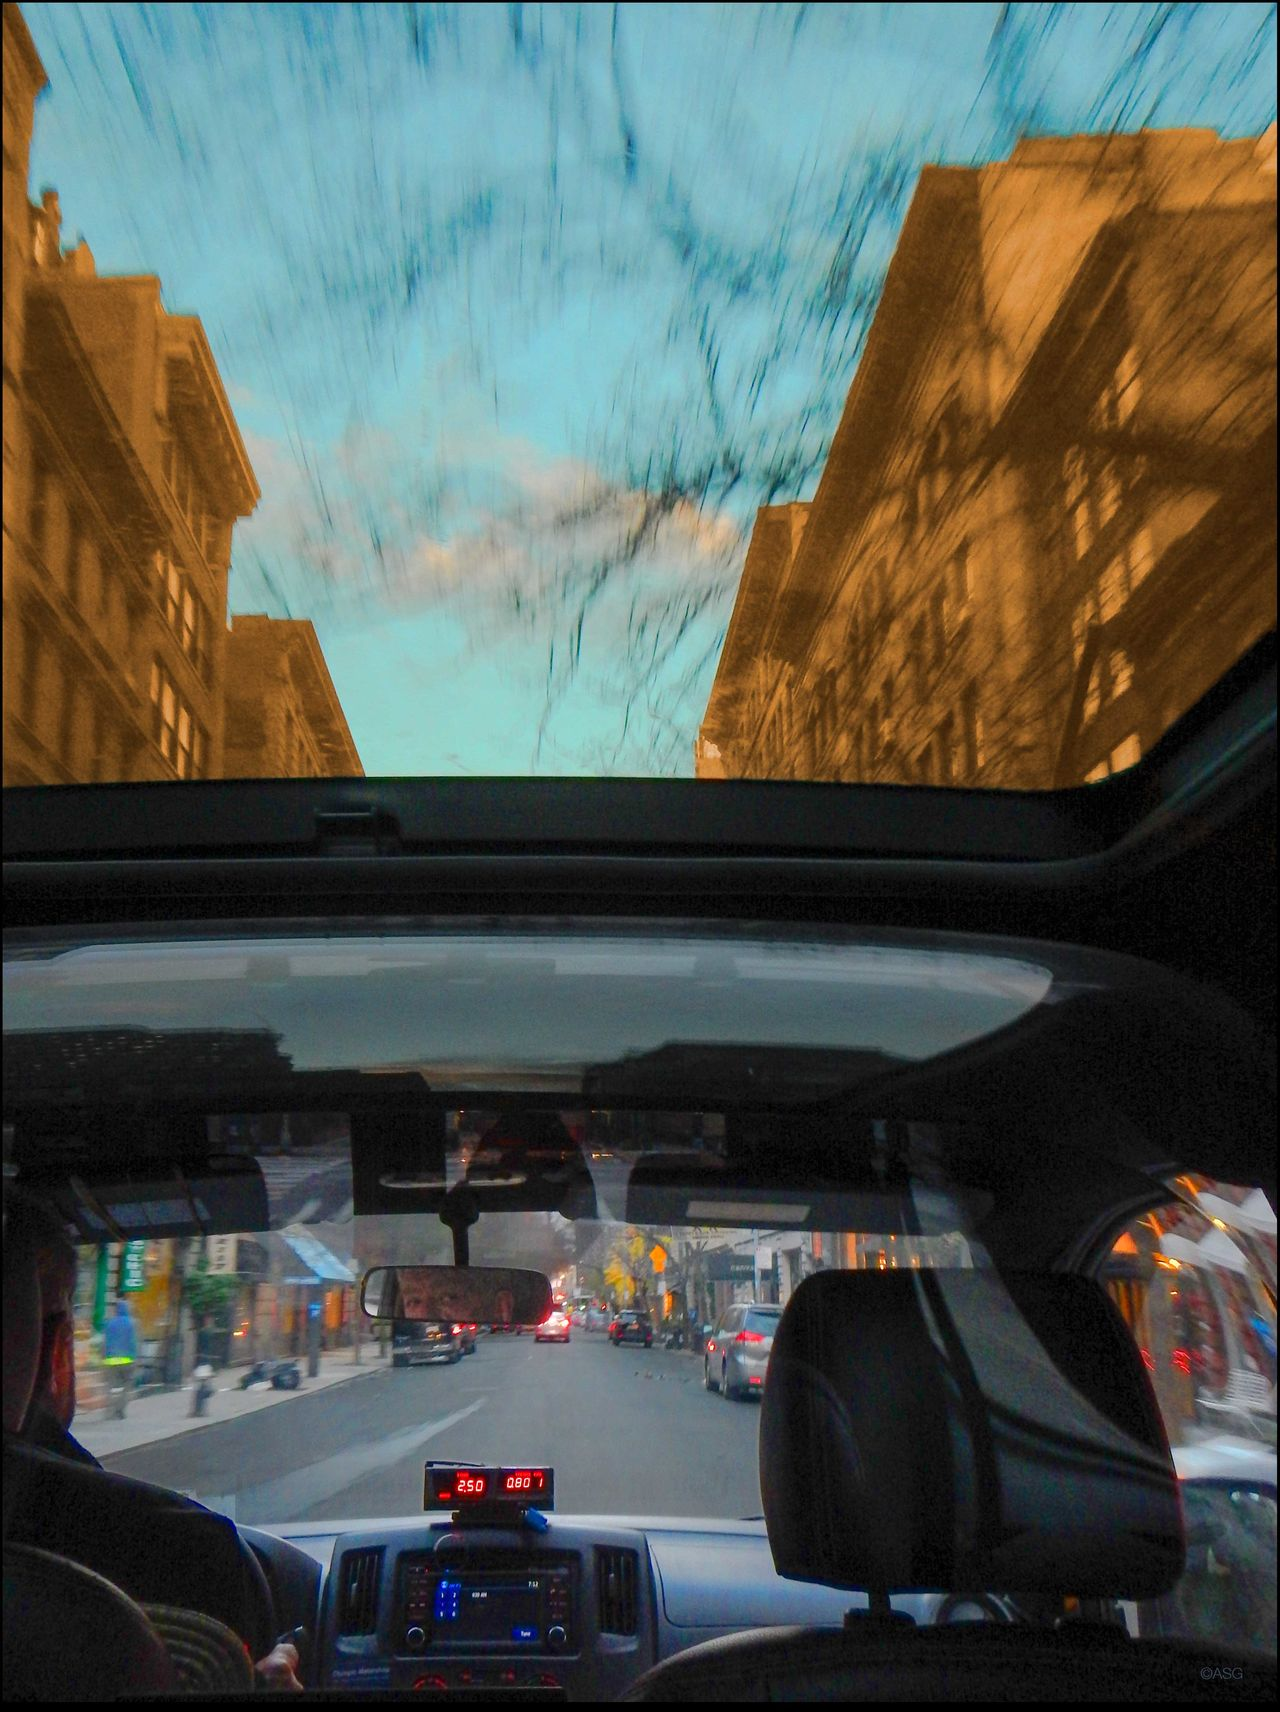 New Cab _ New Vistas #32 Buildings, Sky, Clouds, Street, While Driving Exterior New Cab _ New Vistas #32 - 12/4/15 On The Move Sun Roof Taxi Driver Vehicle Interior